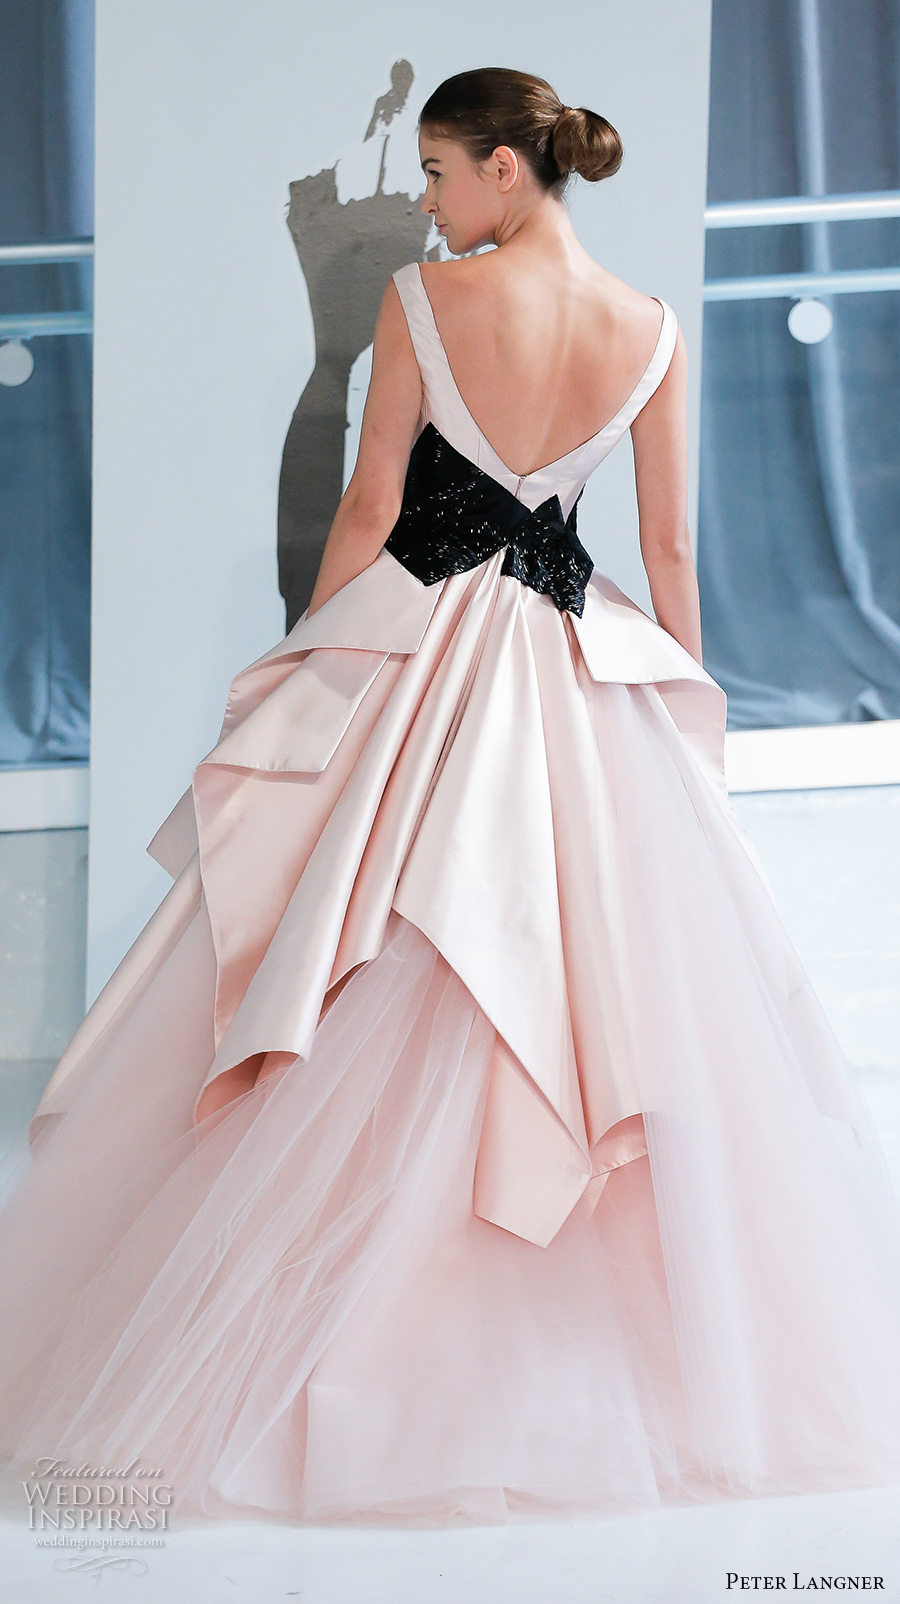 peter-langner-spring-2018-bridal-sleeveless-v-neck-black-accent-simple-pink-princess-ball-gown-wedding-dress-open-v-back-chapel-train-01-bv.jpg